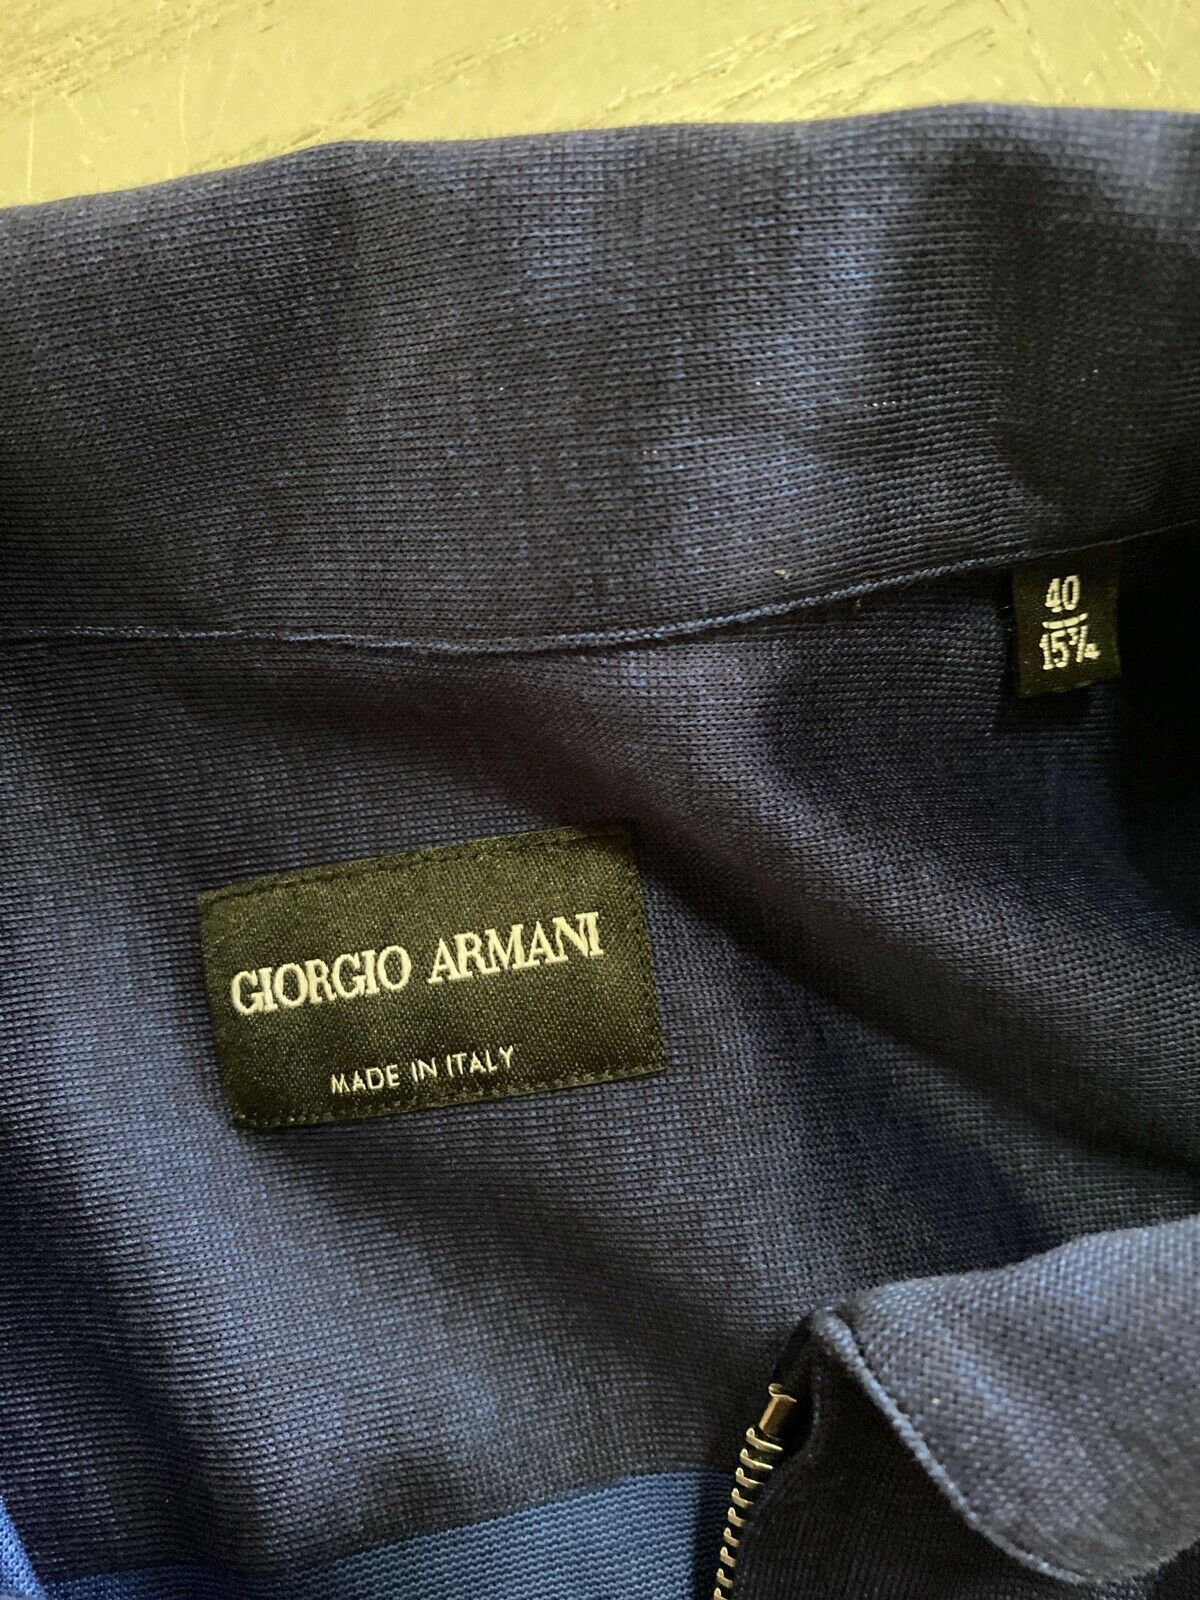 NWT $945 Giorgio Armani Mens Shirt Jacket Blue/Navy 40/15 3/4 Italy